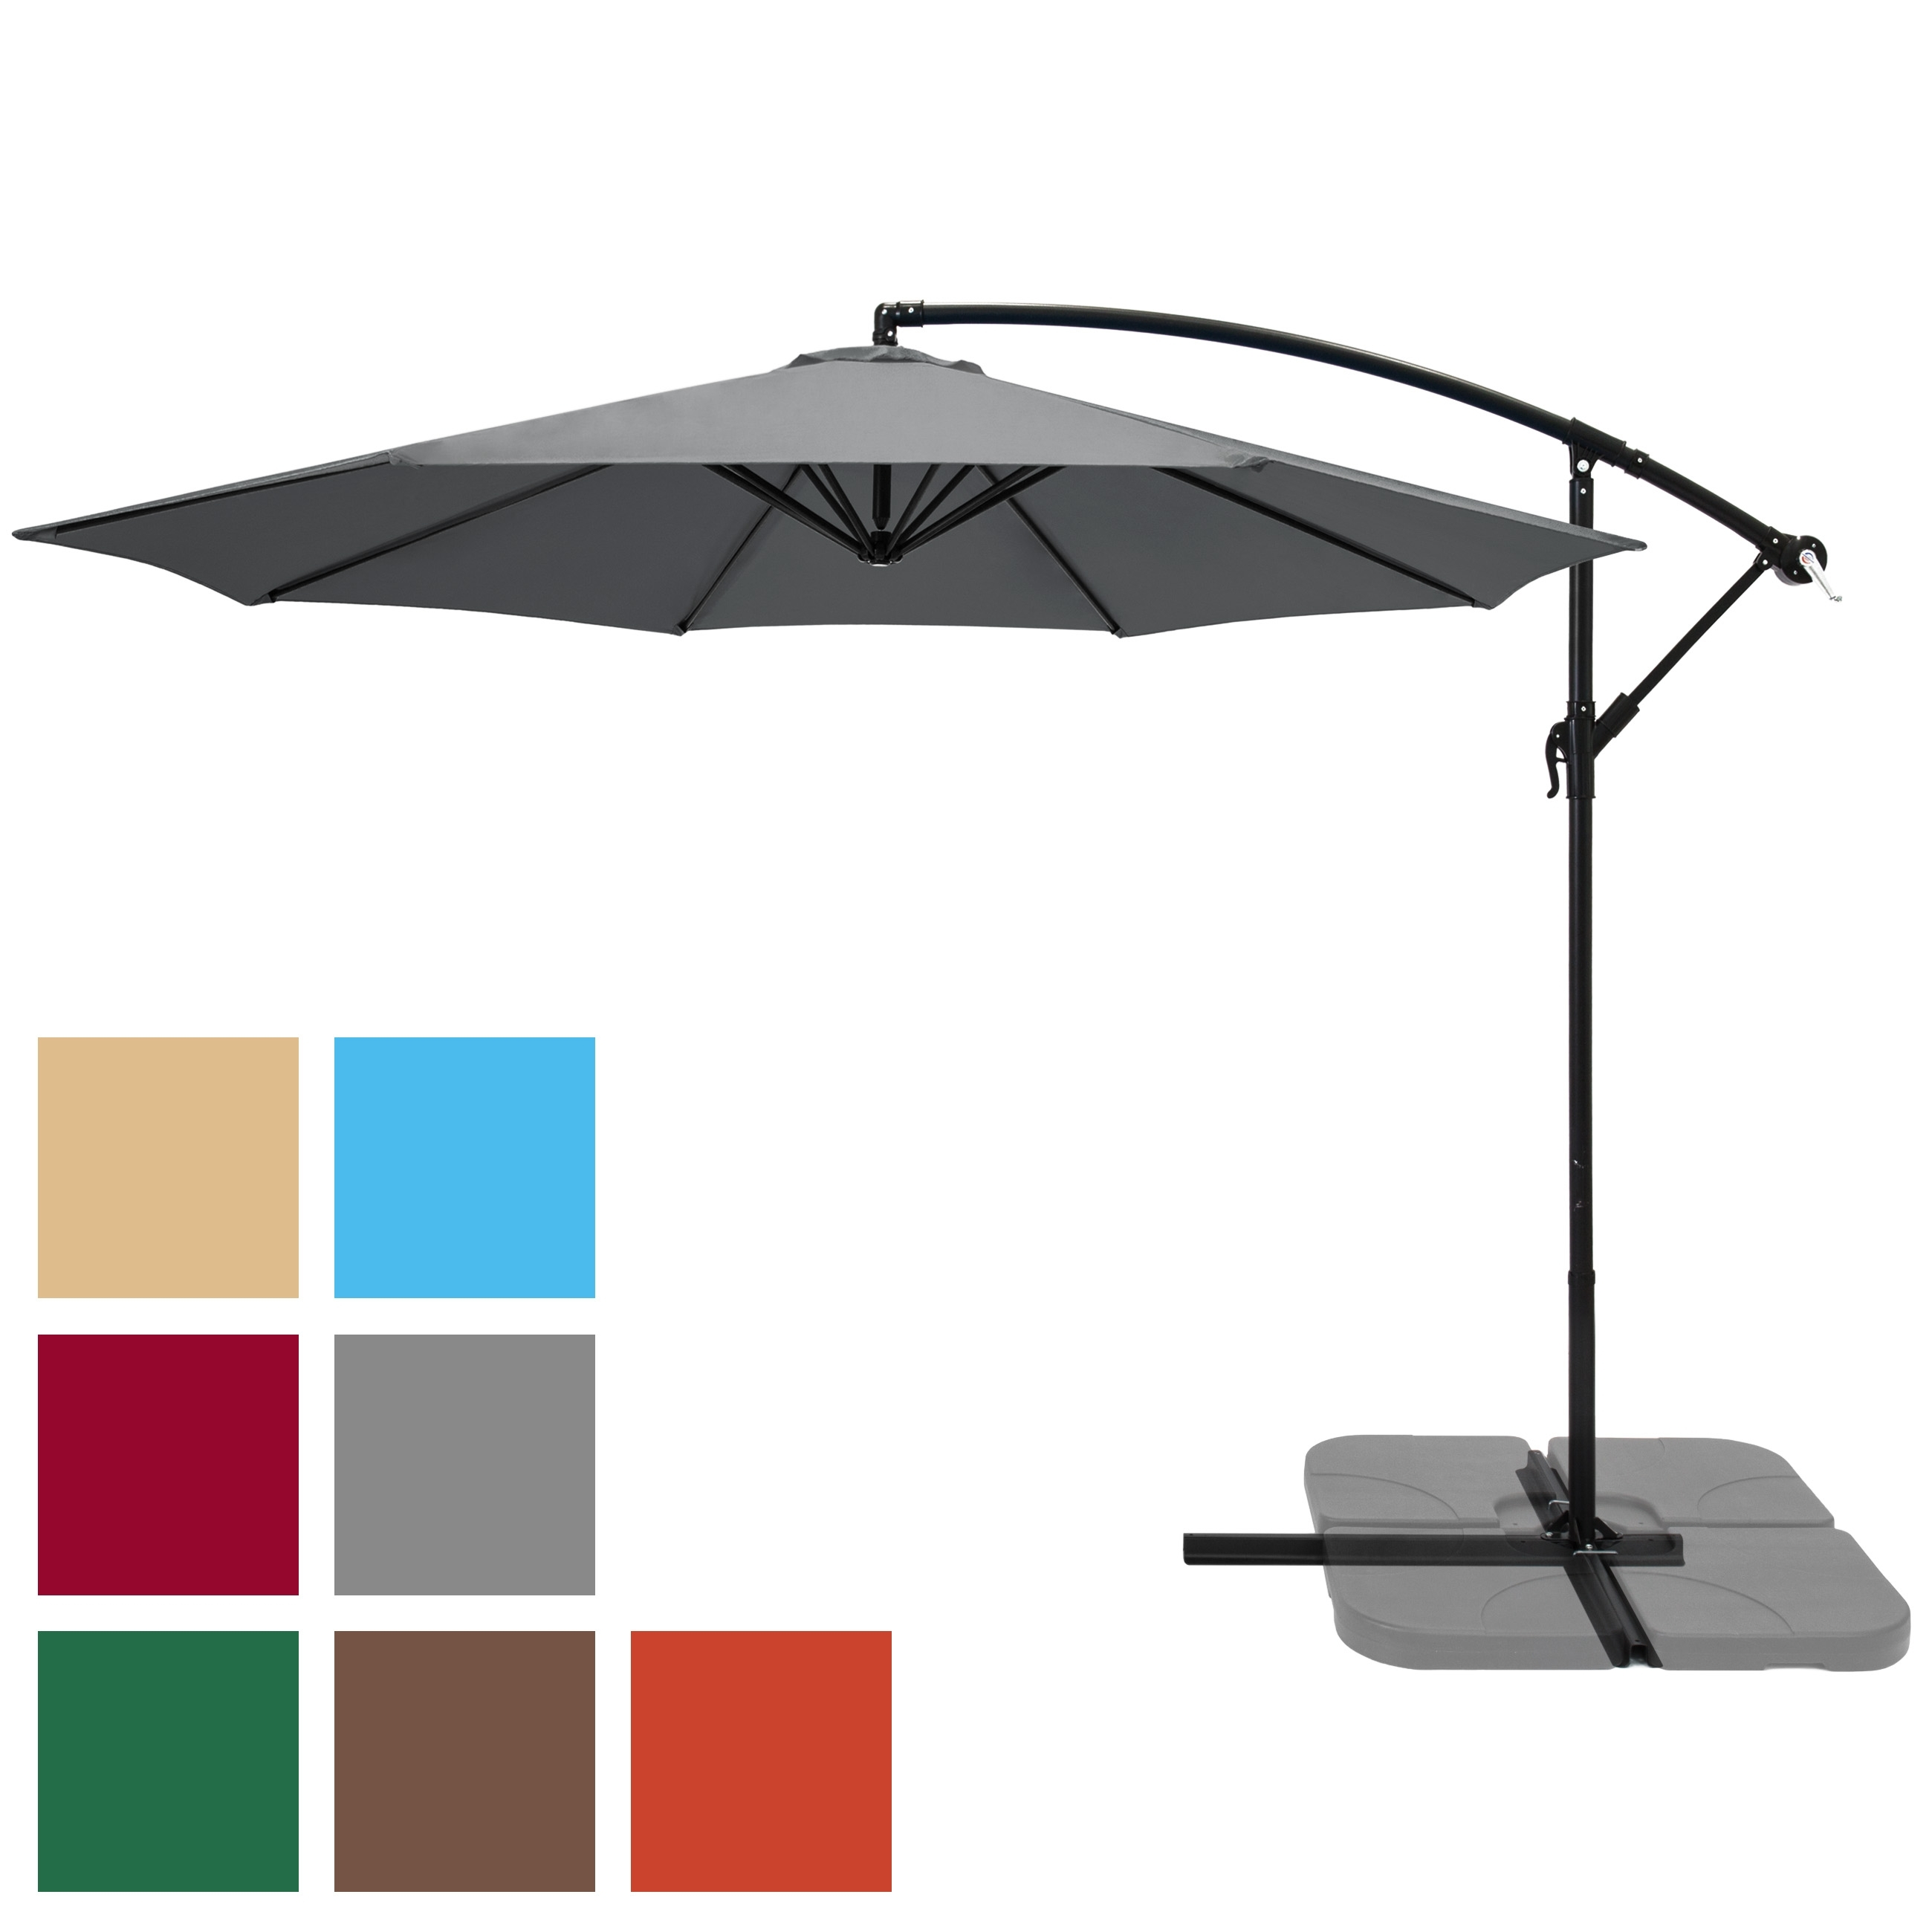 Hanging Offset Patio Umbrellas Intended For Famous Bestchoiceproducts: Best Choice Products 10ft Offset Hanging Outdoor (View 10 of 20)